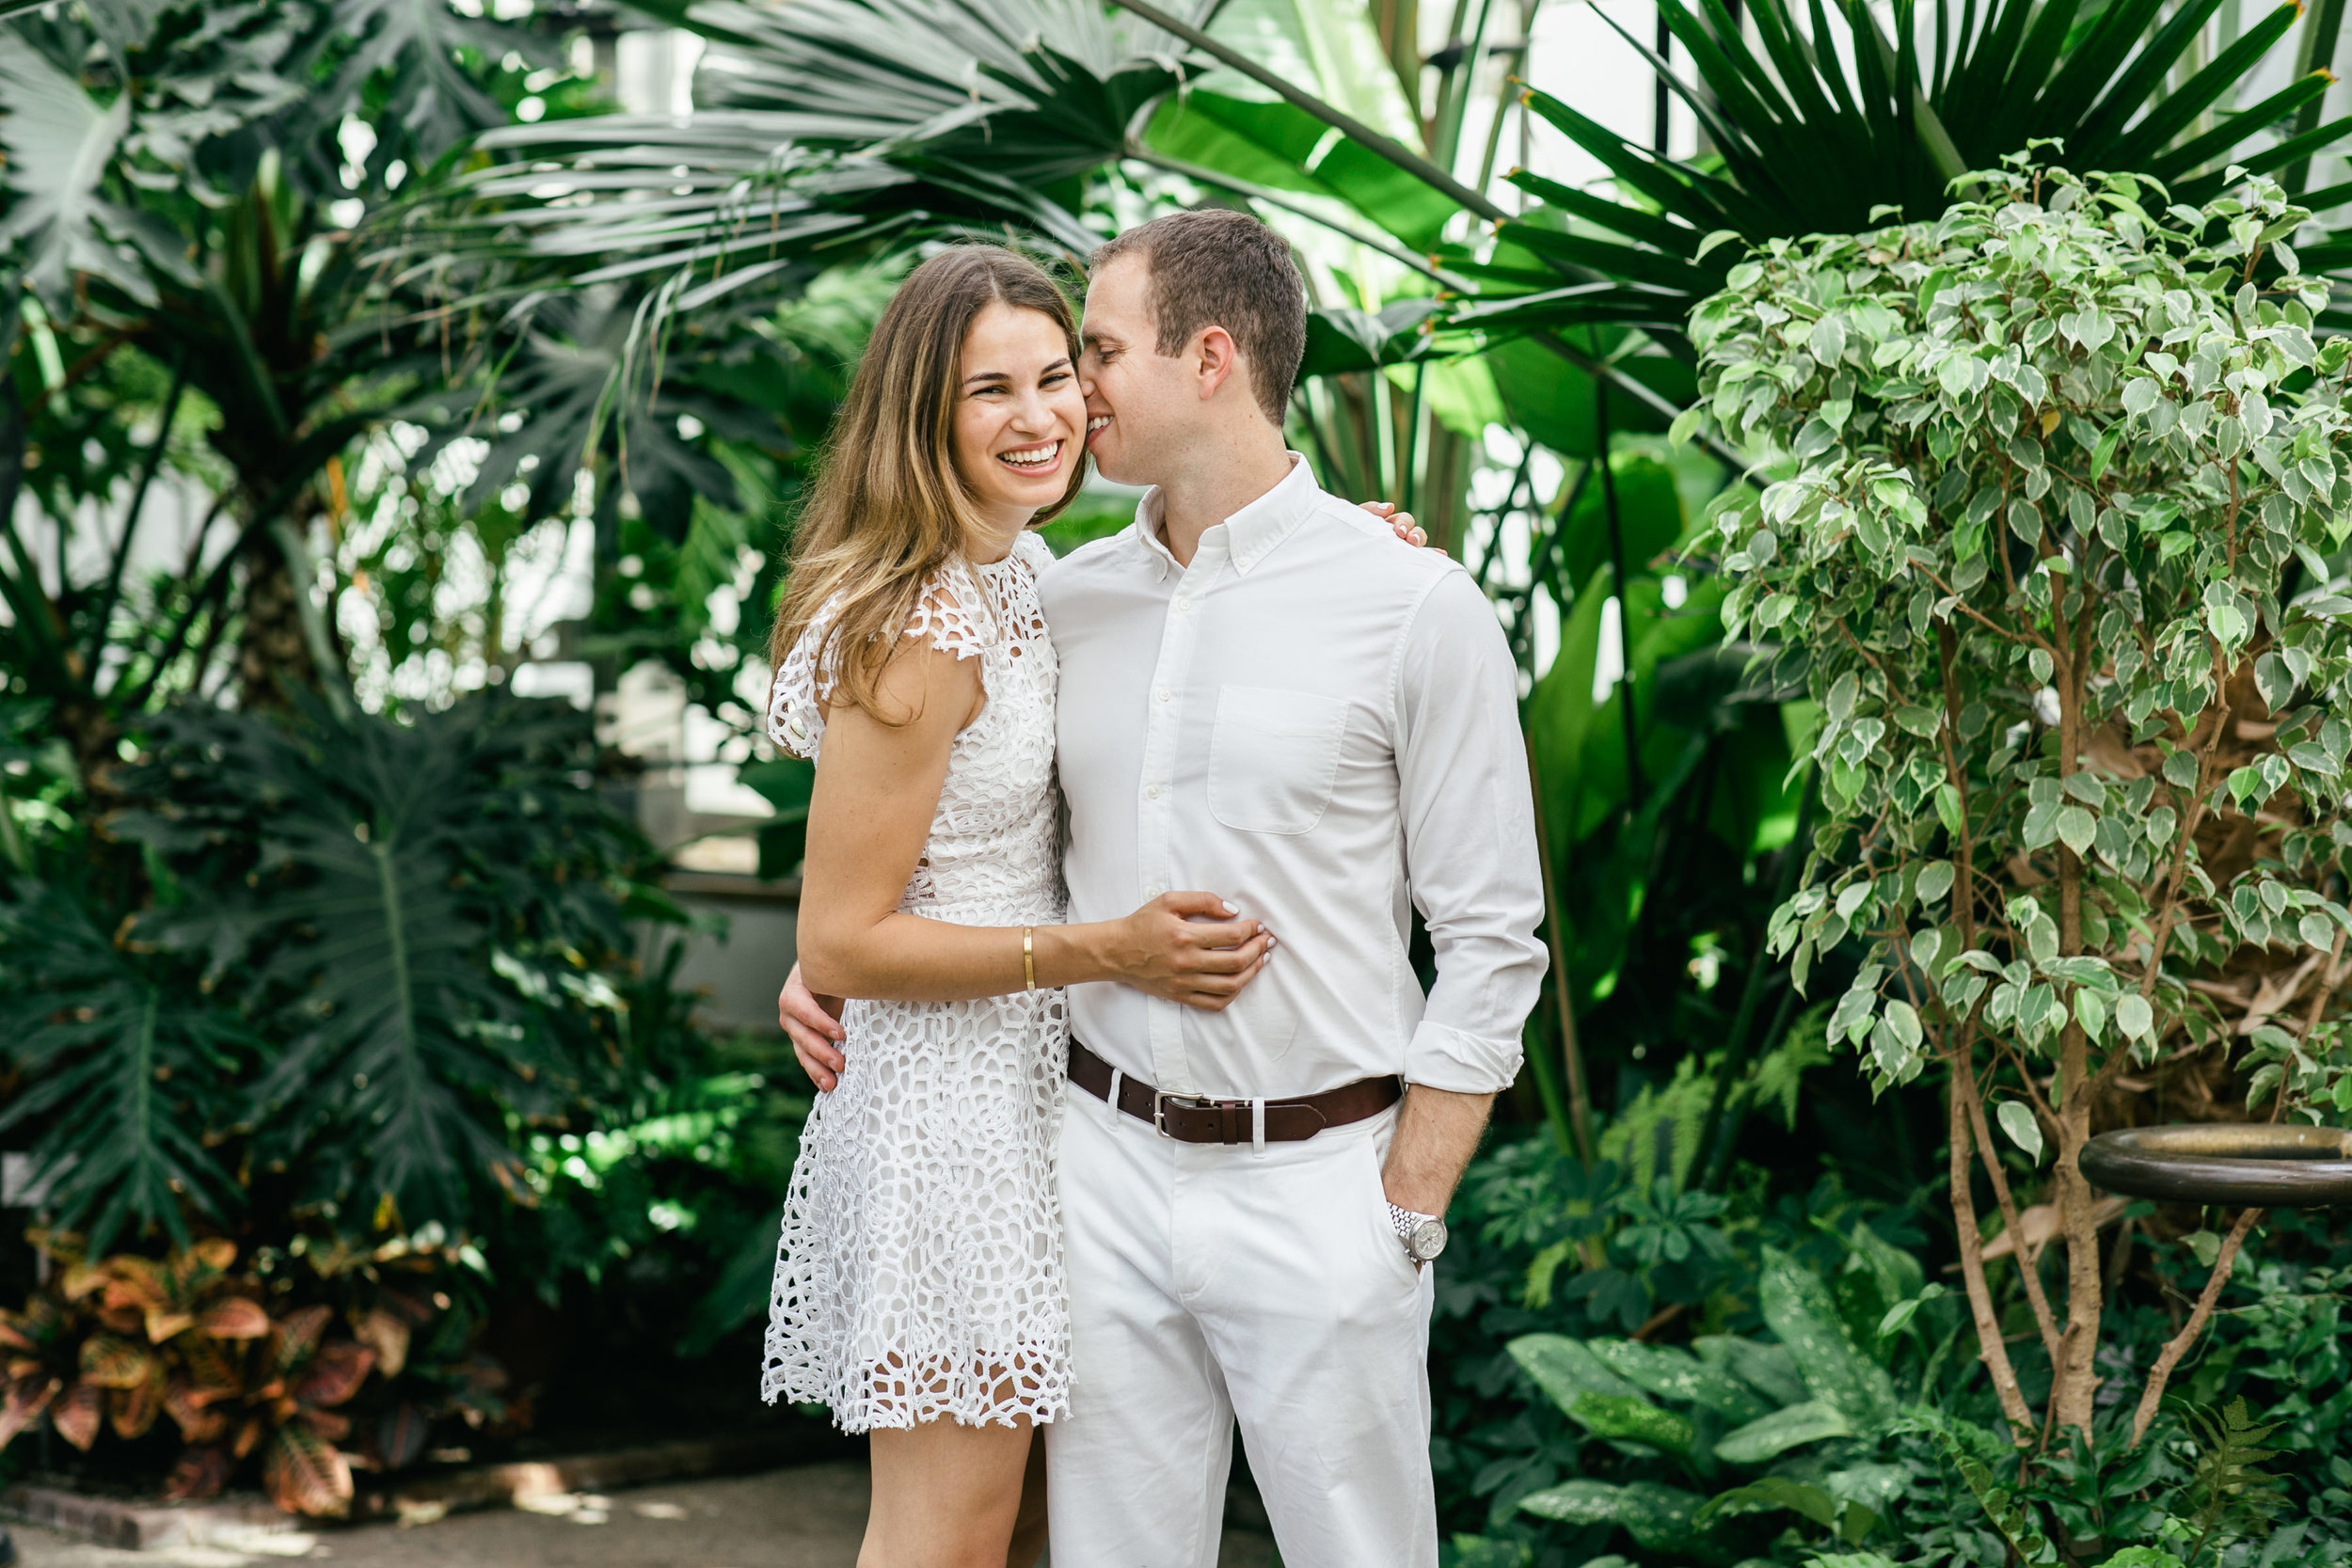 photography-family-natural-candid-engaged-fairmount-philadelphia-wedding-horticultural center-modern-lifestyle-24.JPG